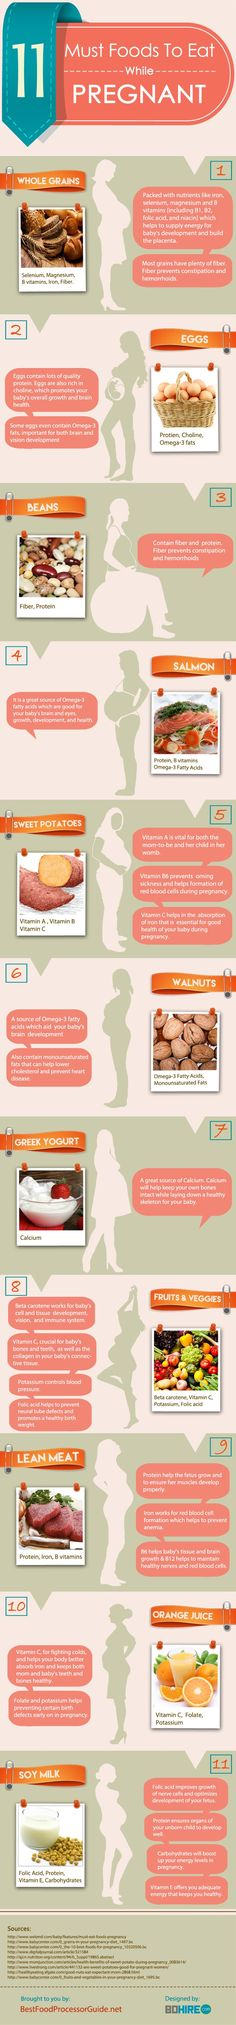 11 Foods Every Pregnant Women Should Take!